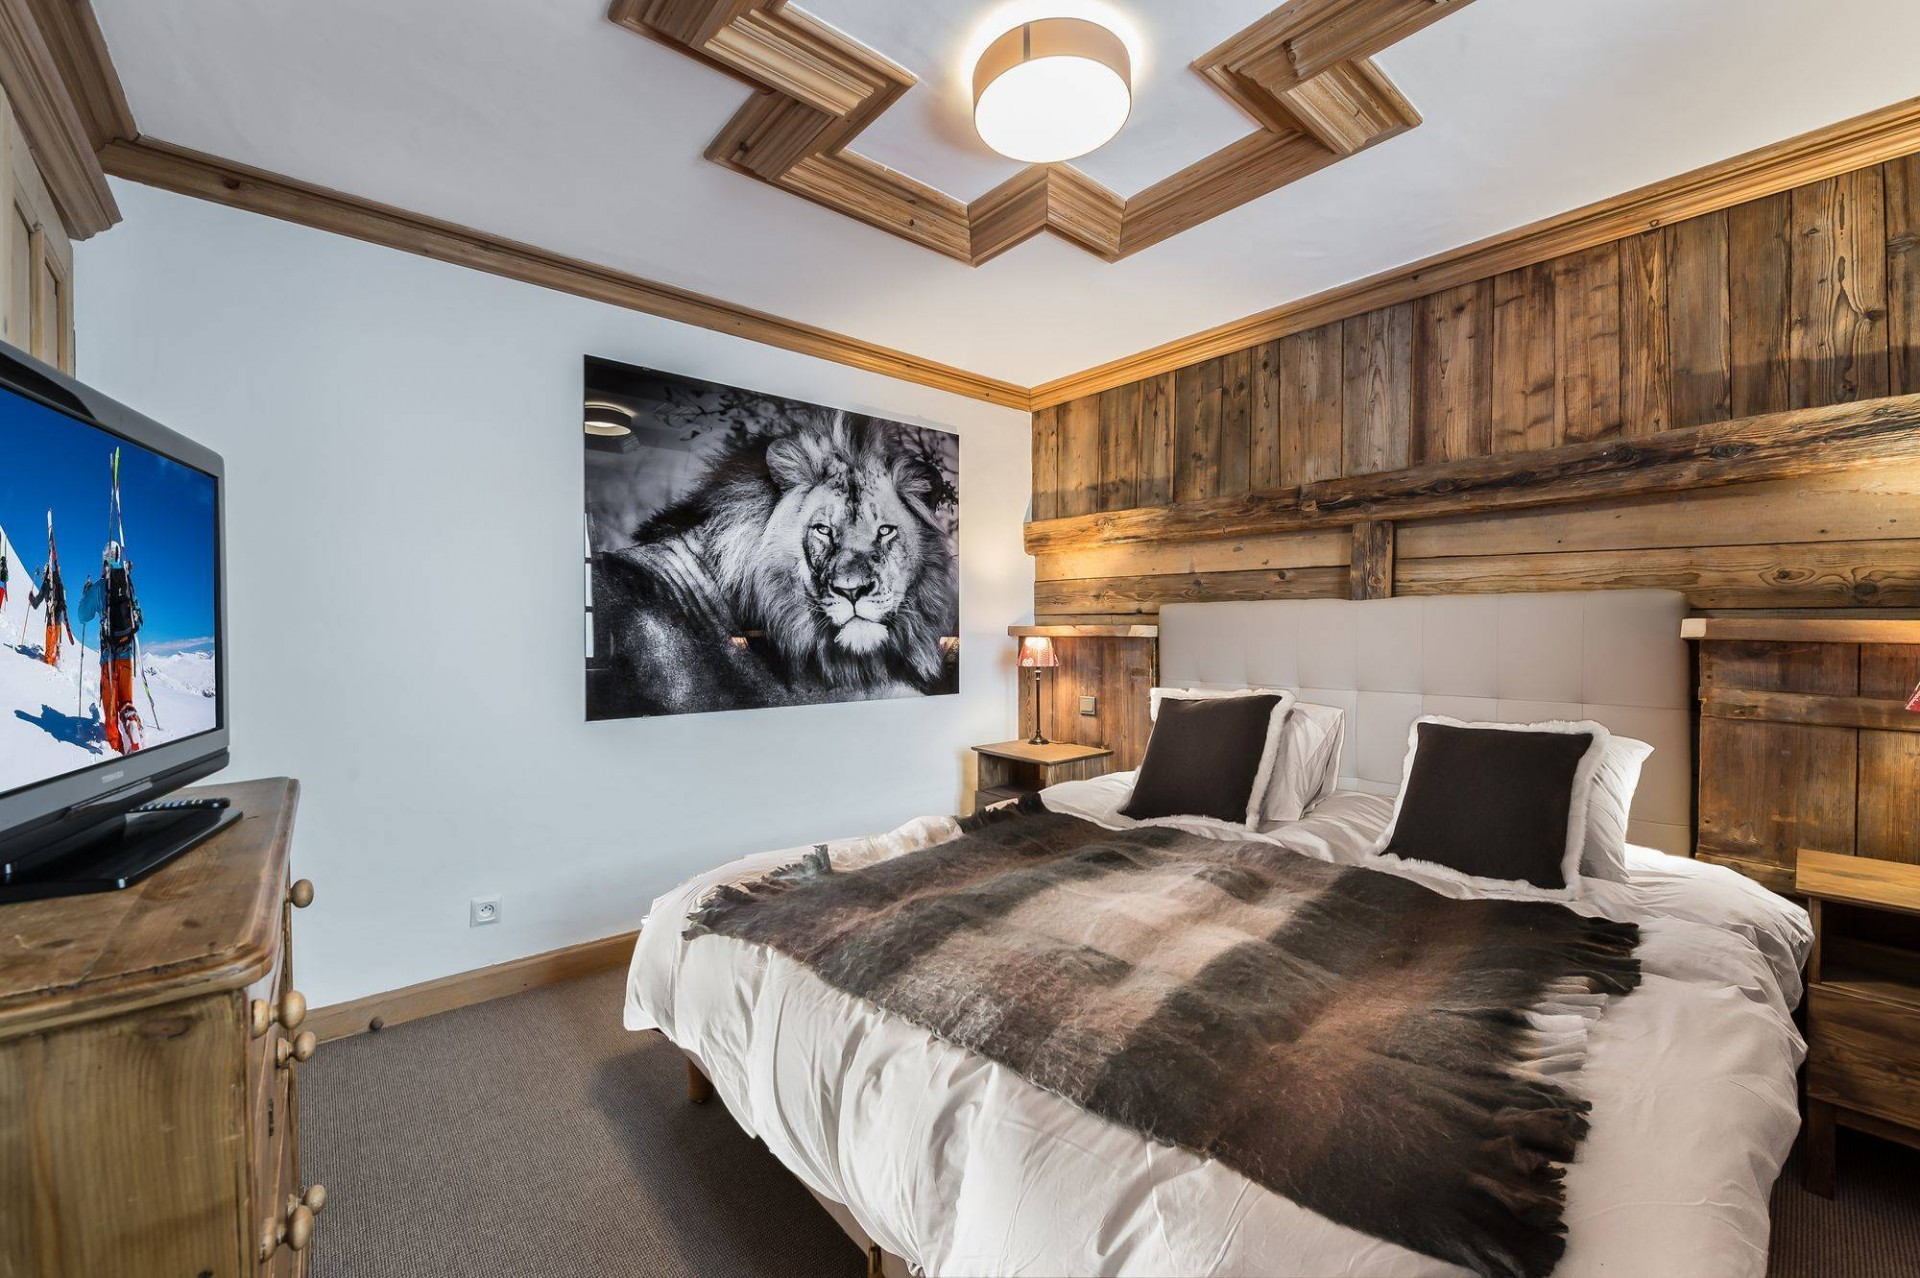 Courchevel 1850 Location Chalet Luxe Tazuy Chambre 3